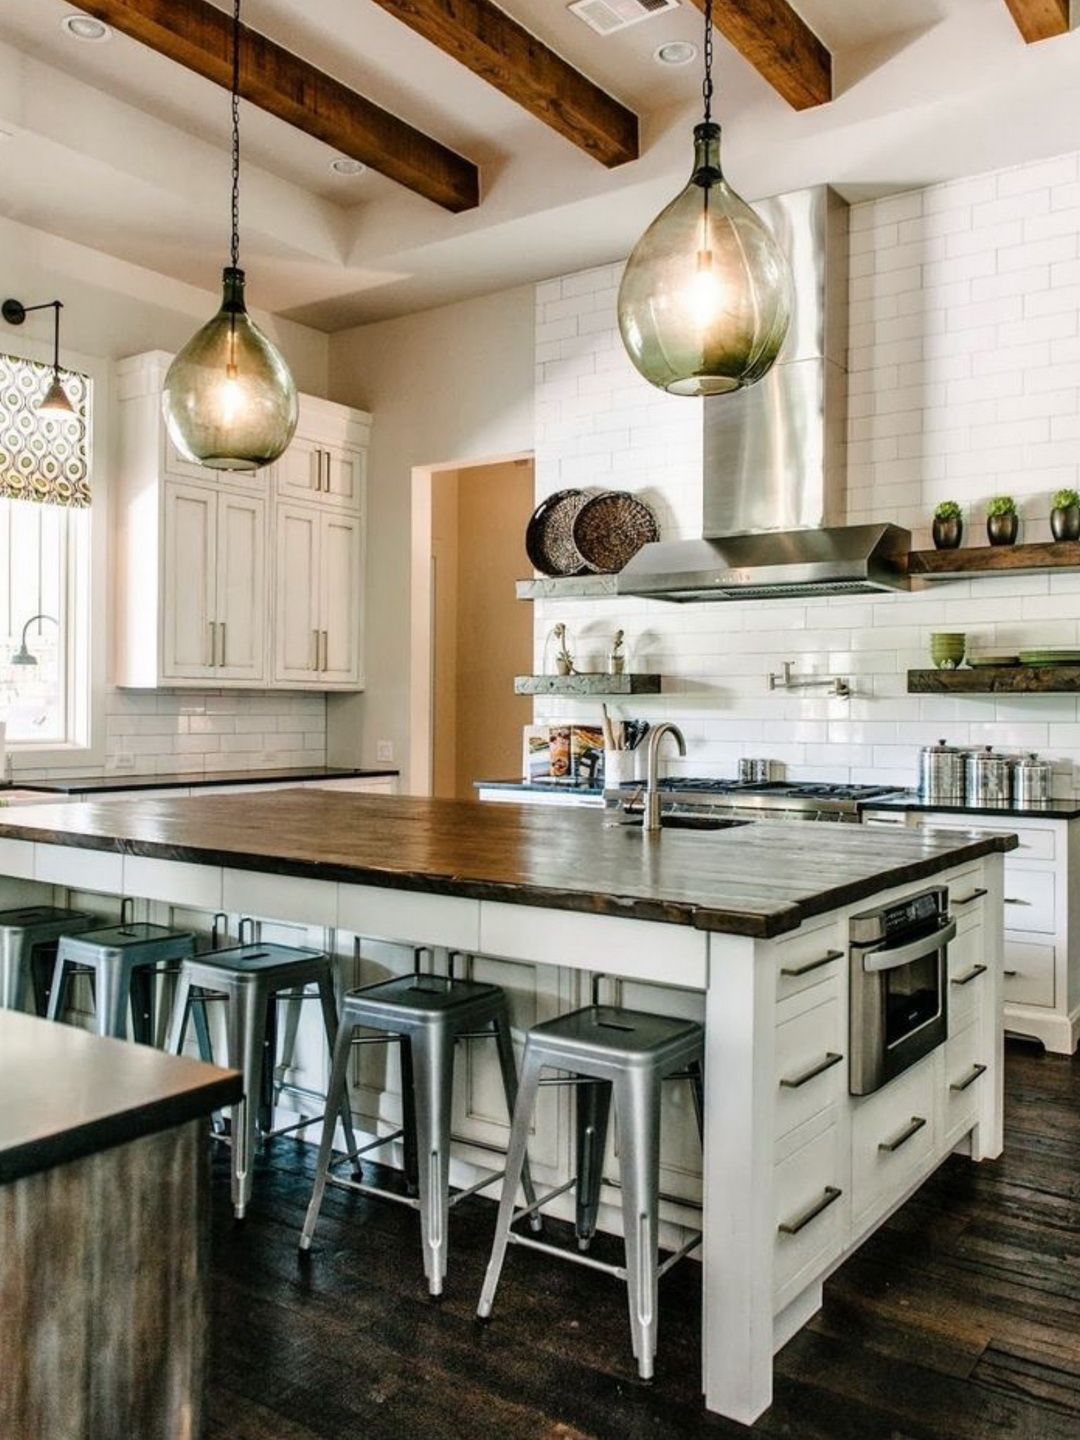 Buy Quikrete Countertop Mix Industrial Farmhouse Chic Mom 39s Kitchen Industrial